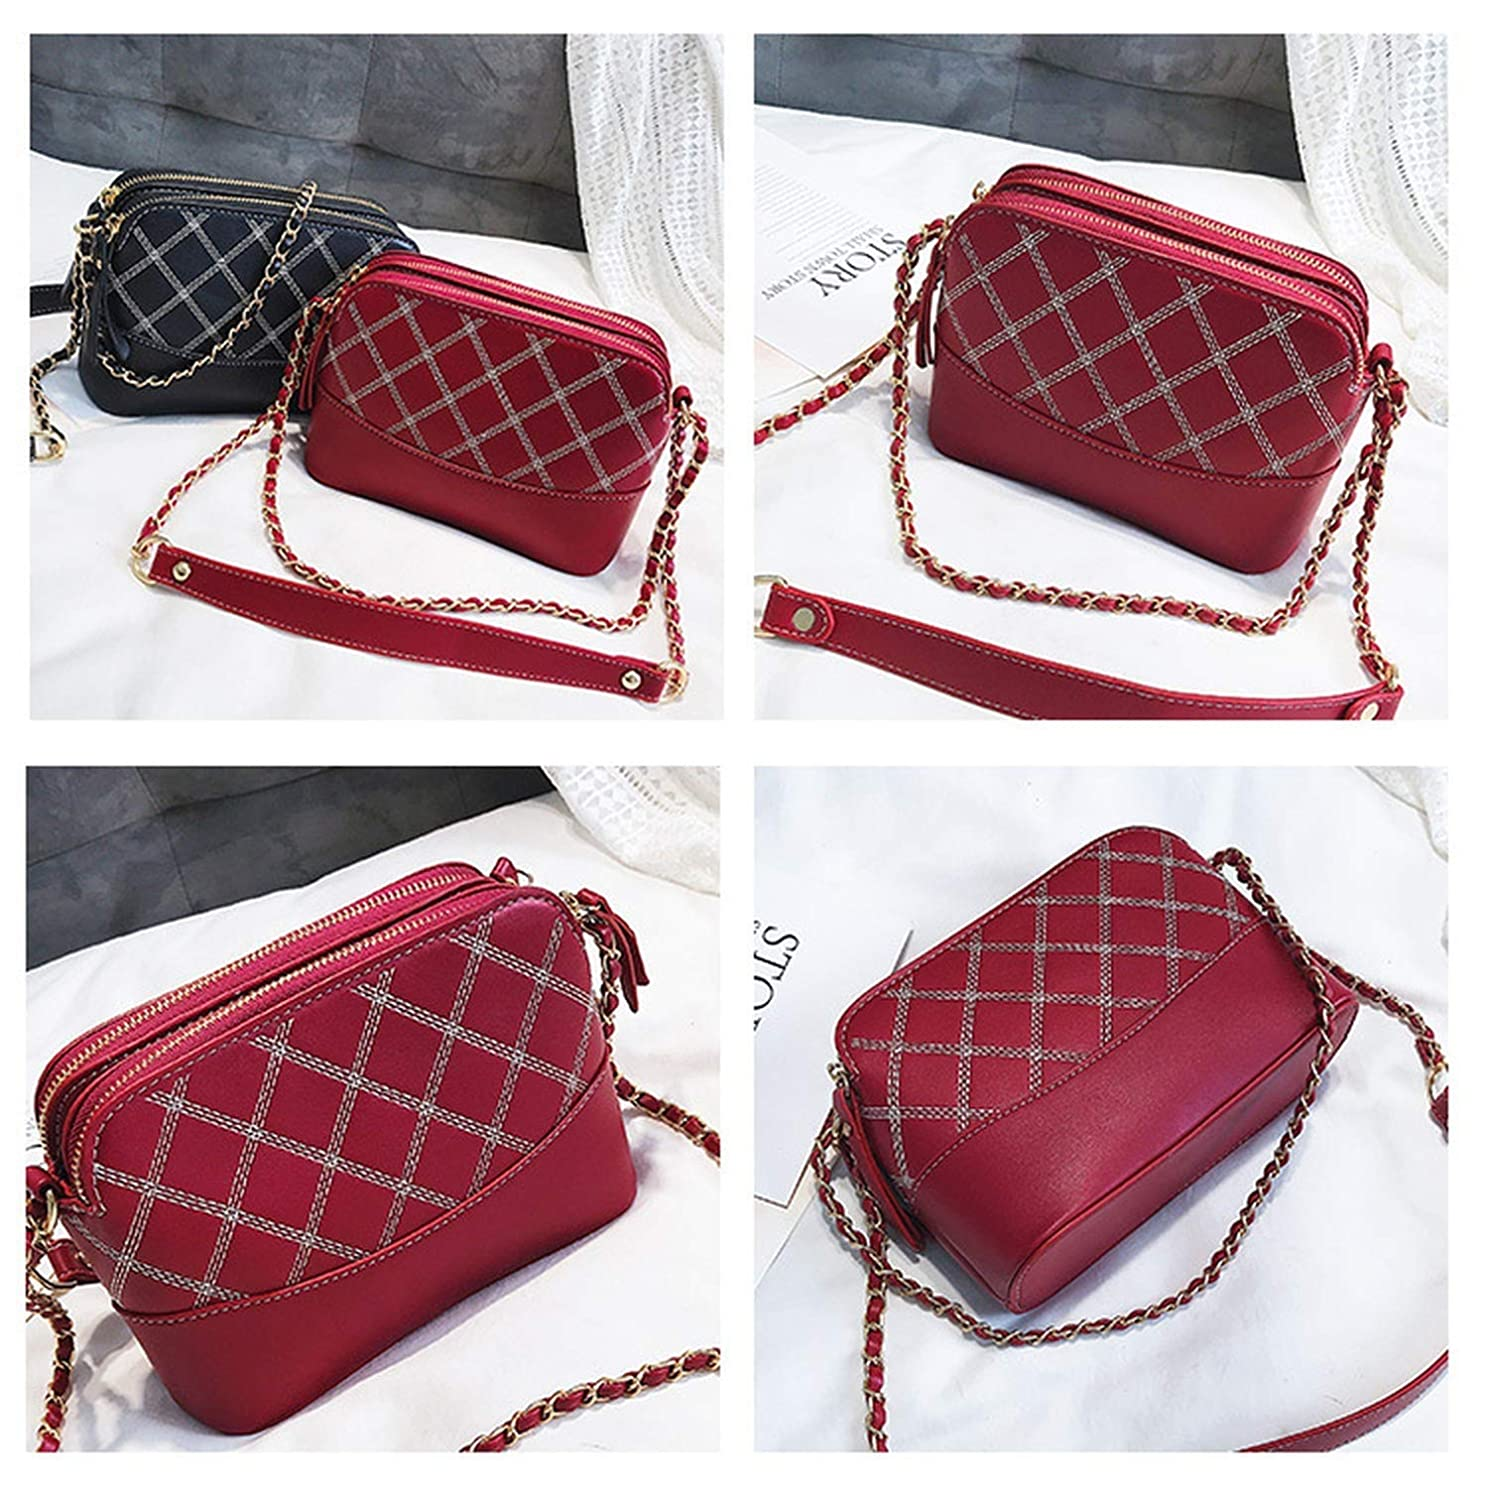 Female Leather Bags For Women Ladies Small Lattice Chain Mini Crossbody Bag Shell Shoulder Bags Bolsos Mujer, Black: Handbags: Amazon.com